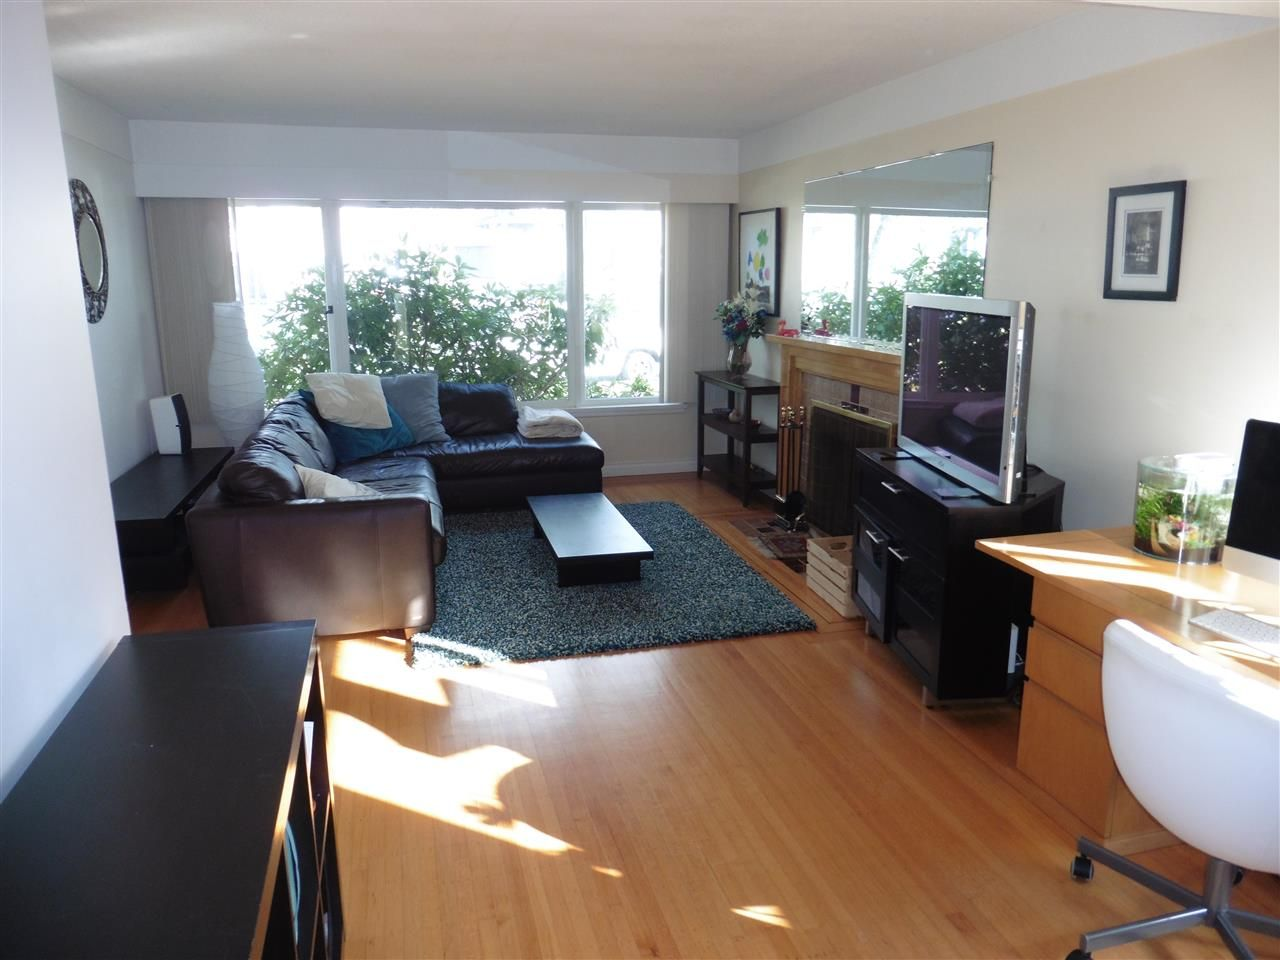 Photo 2: Photos: 1626 E 56TH Avenue in Vancouver: Fraserview VE House for sale (Vancouver East)  : MLS®# R2443664